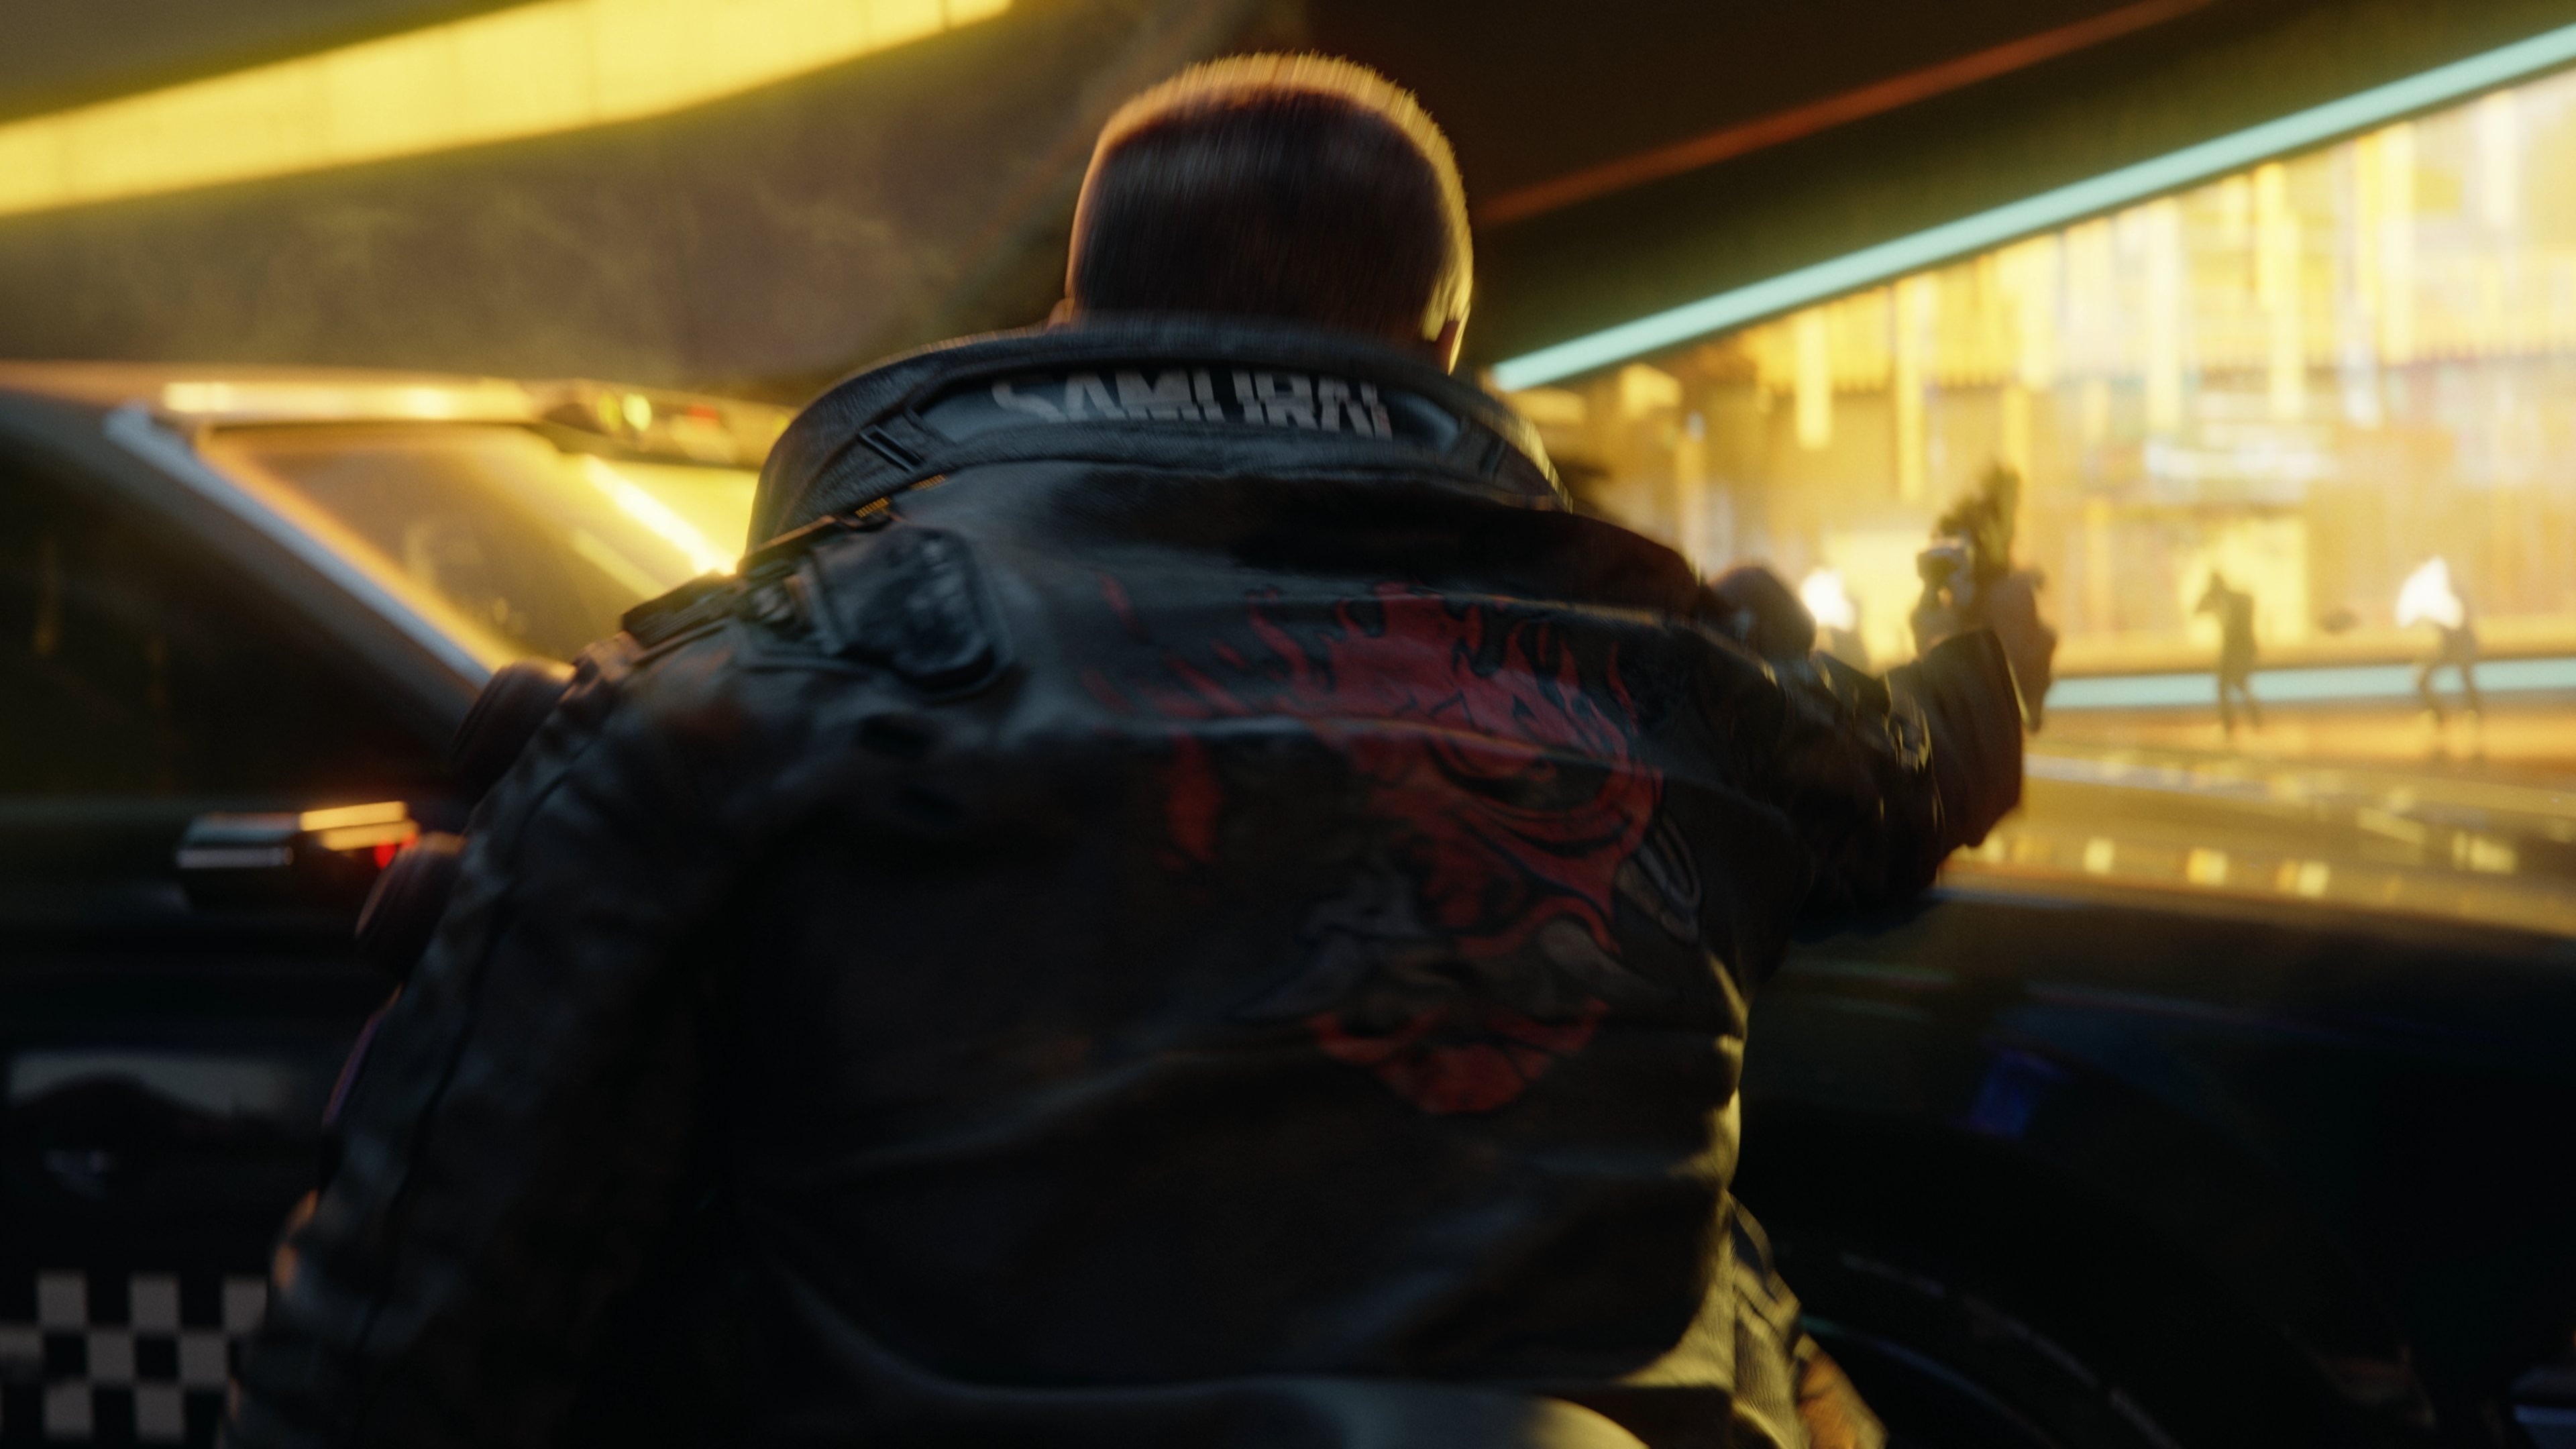 Cyberpunk 2077 Screen 2